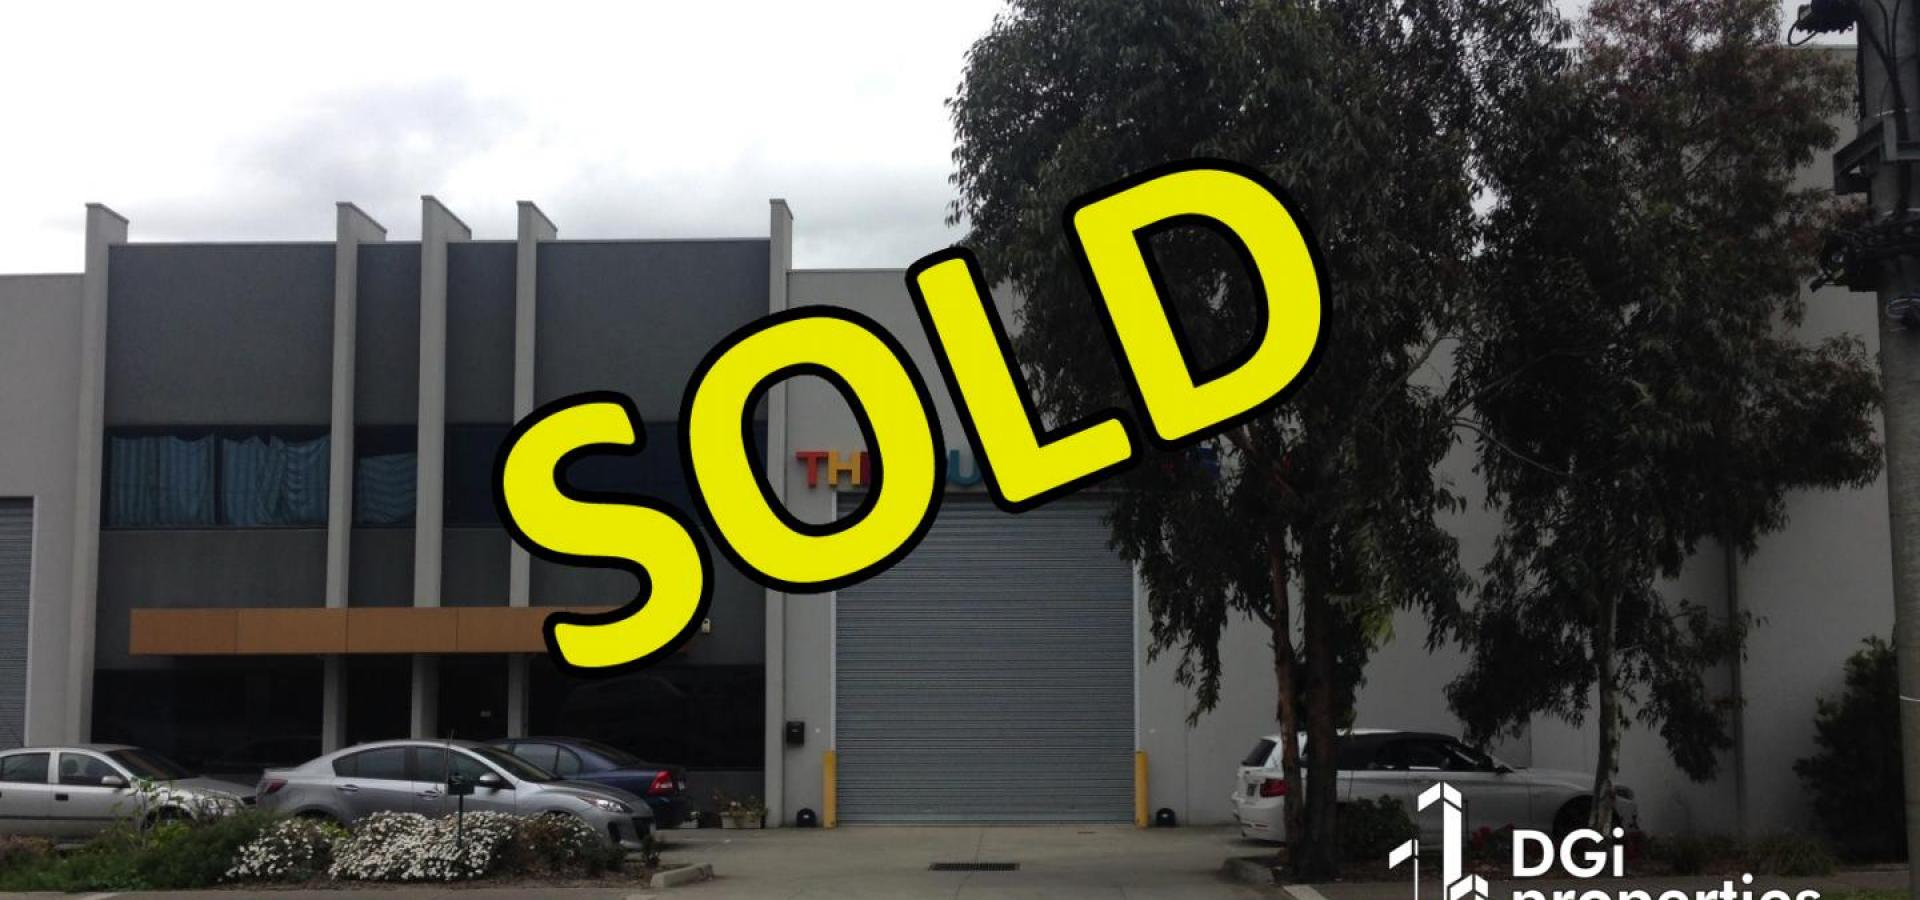 **SOLD ** SOLD **SOLD NEAT & TIDY OFFICE / SHOWROOM / WAREHOUSE BUILDING IN PRIME NORTHERN SUBURB LOCALE